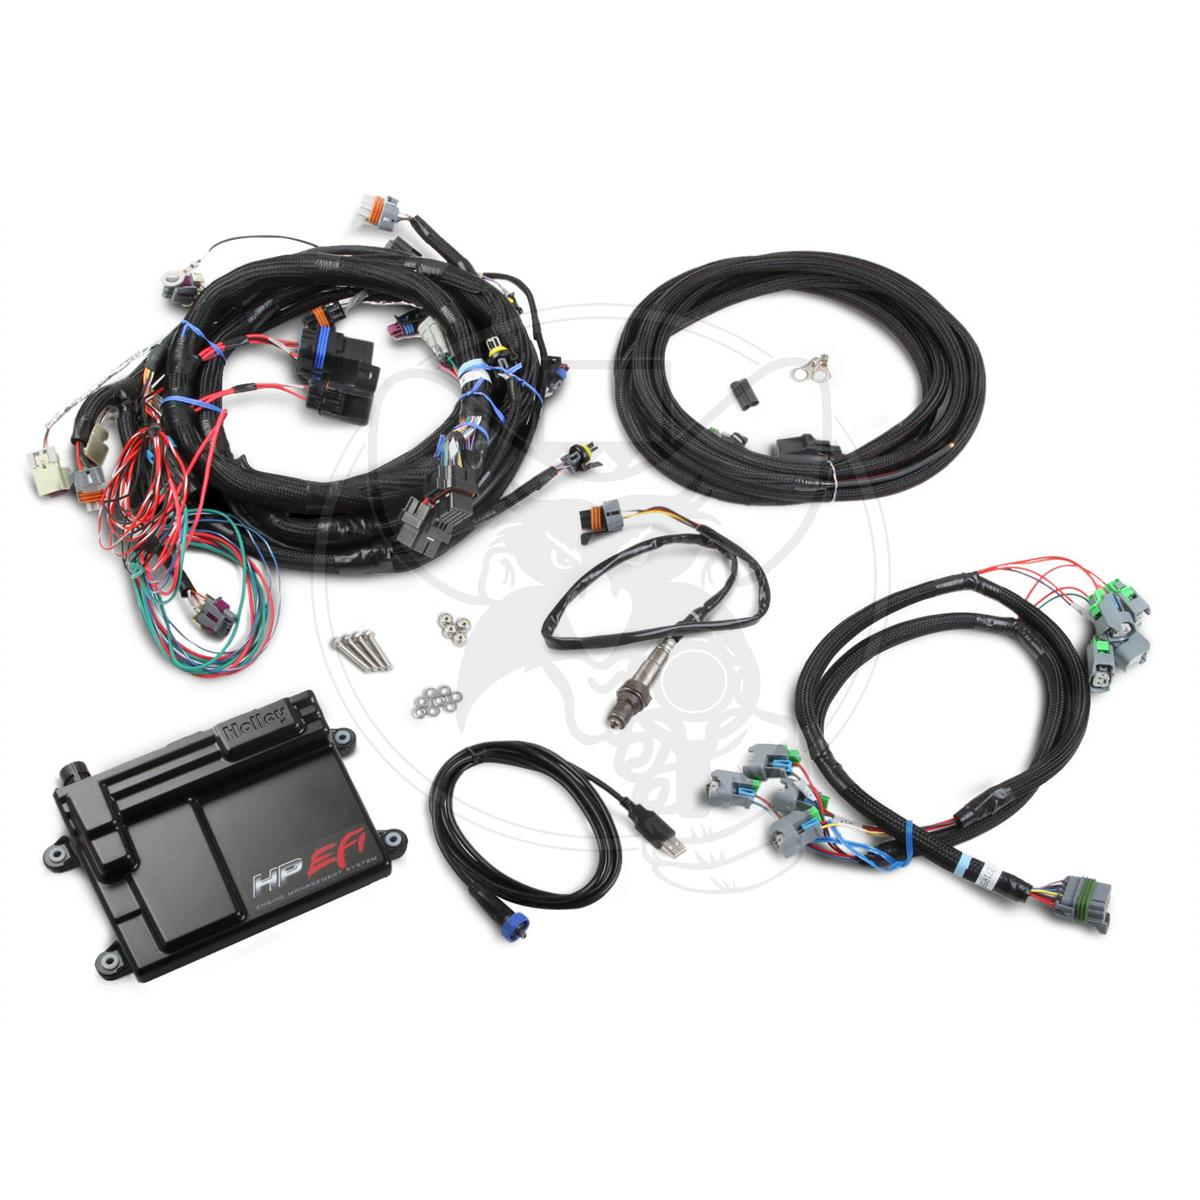 Ho550 603 Holley Hp Efi Ecu Harness Kit